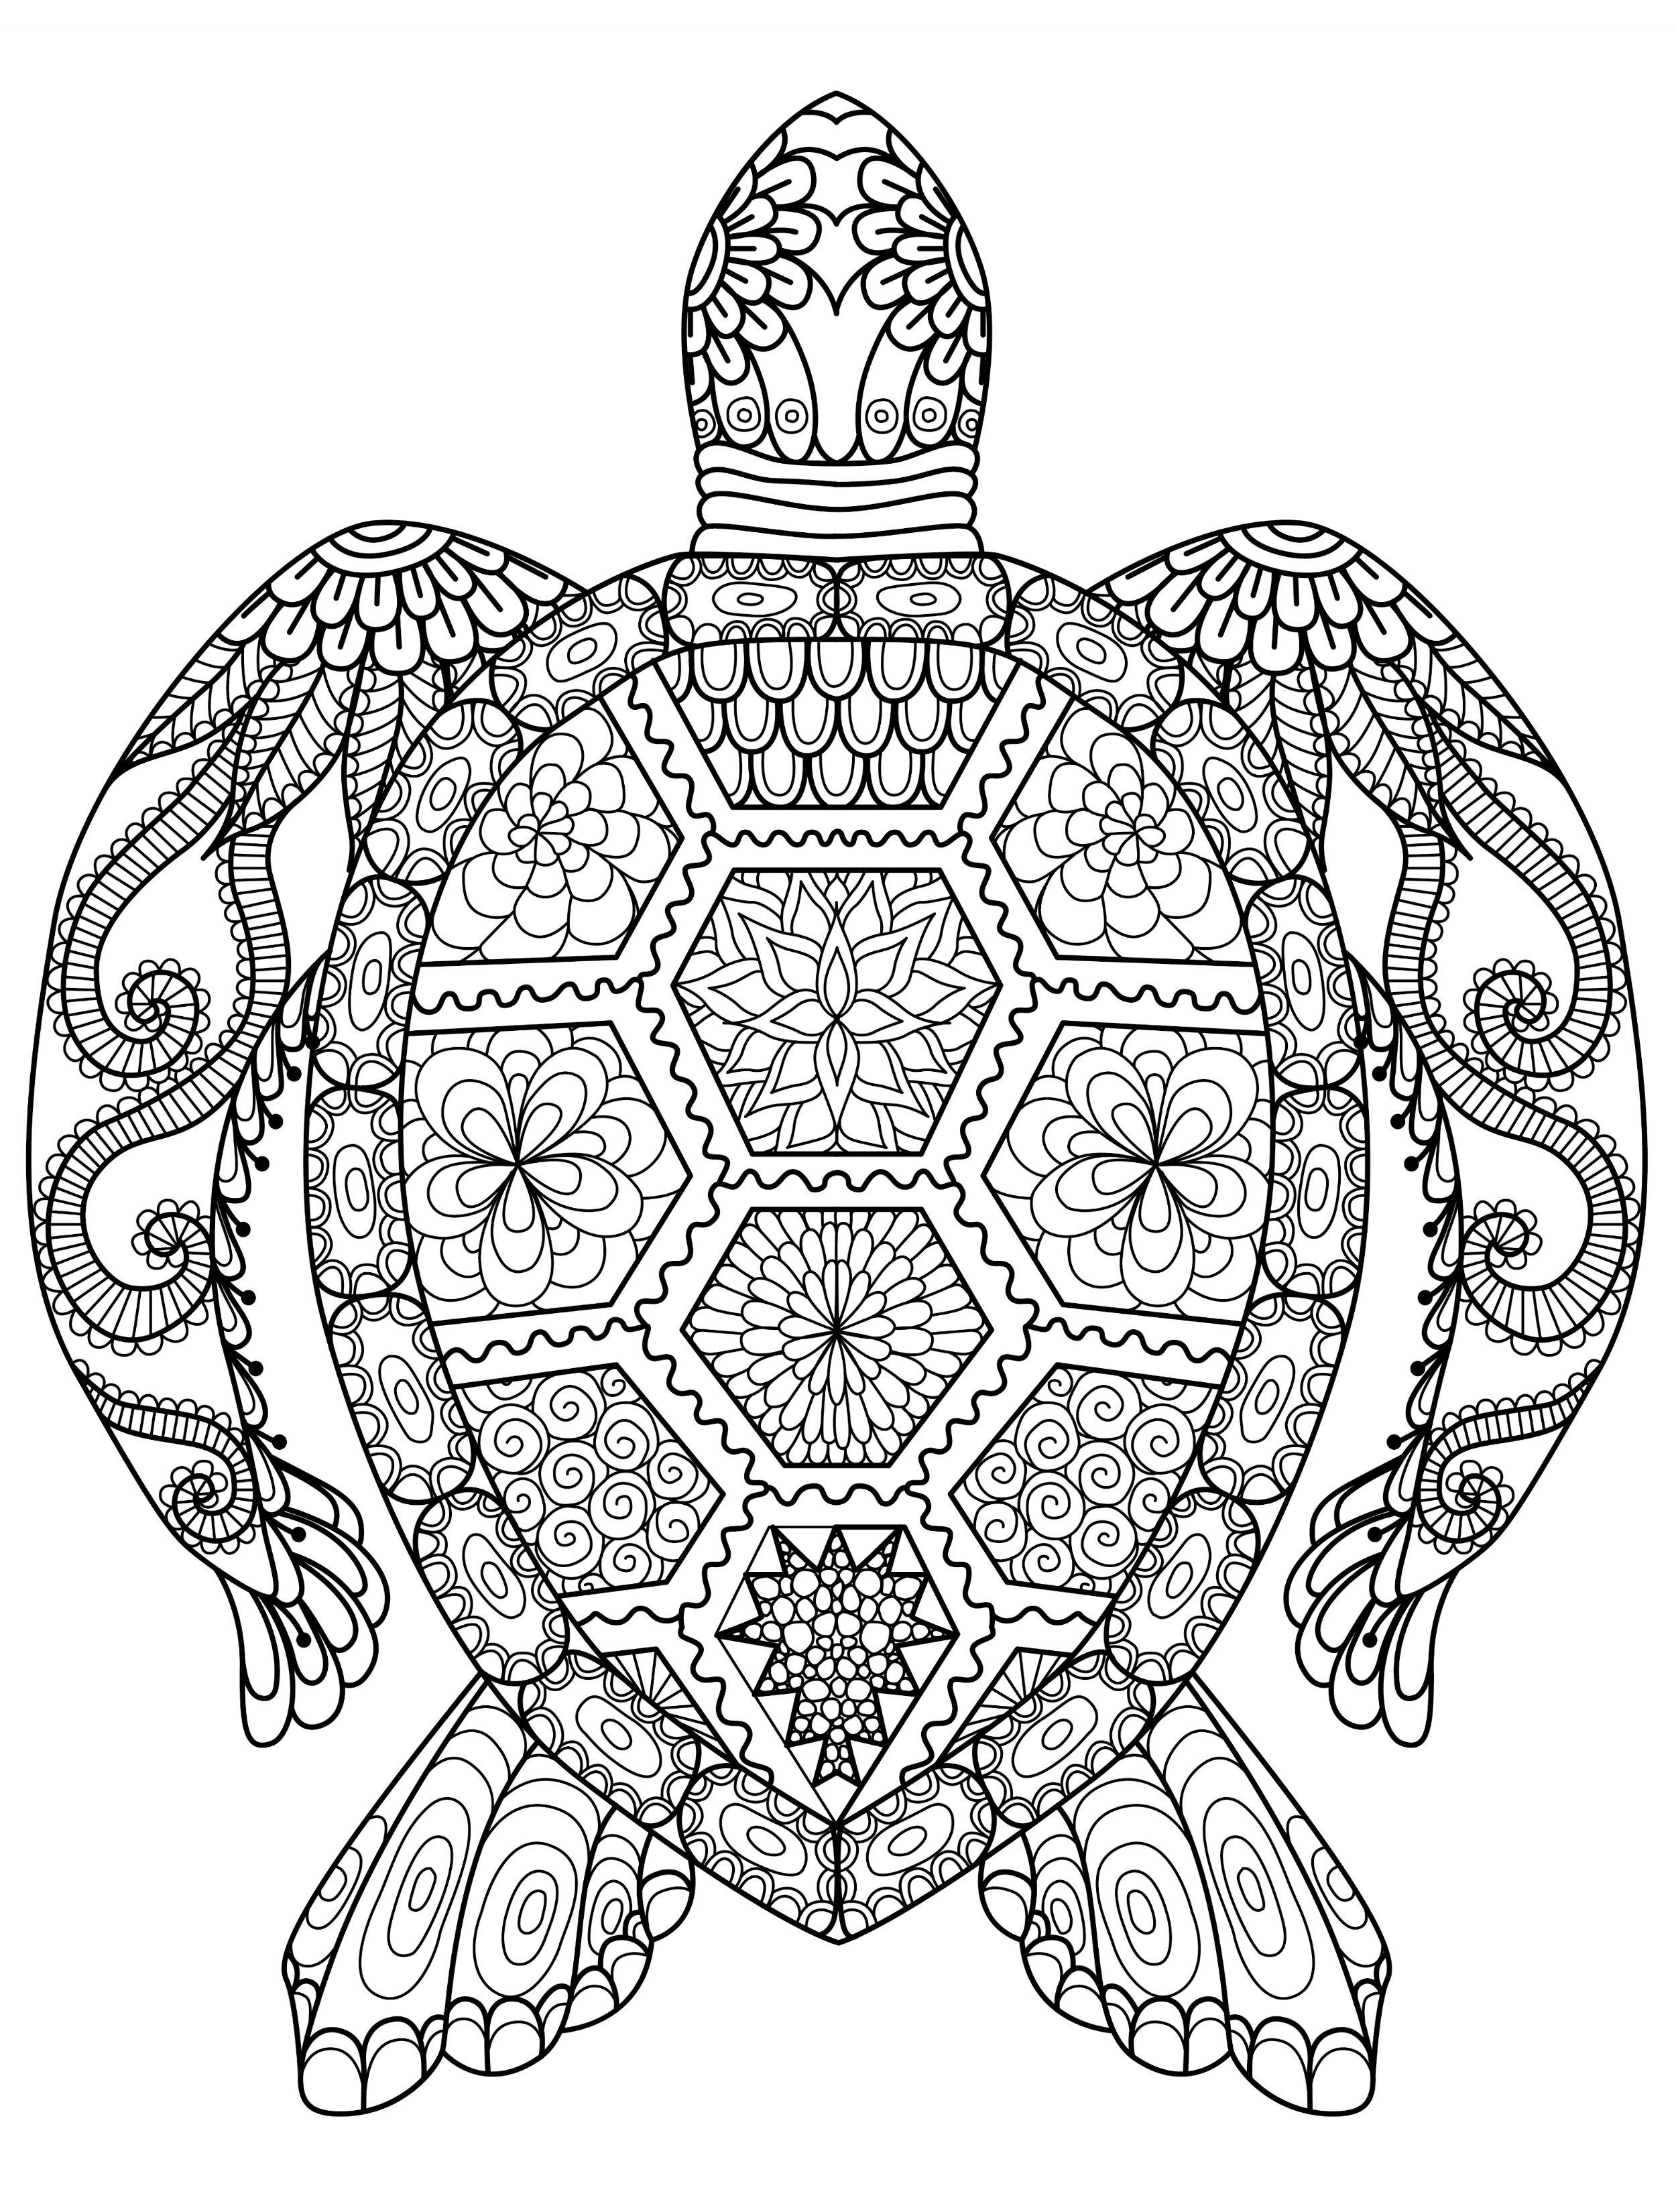 free downloadable coloring pages for adults 20 Gorgeous Free Printable Adult Coloring Pages … | Adult Coloring  free downloadable coloring pages for adults